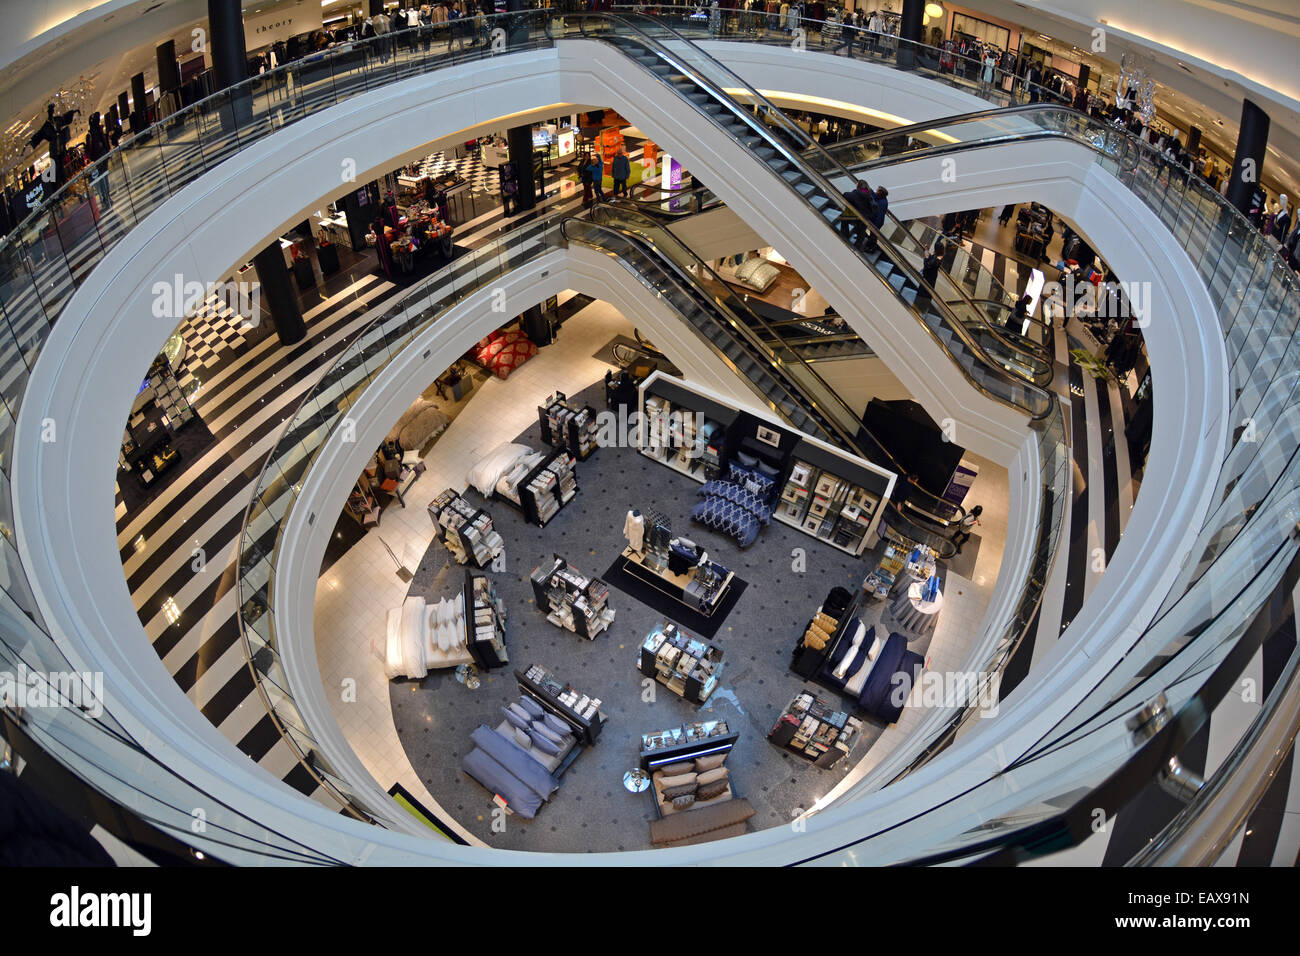 a fisheye lens interior view of 3 floors of bloomingdales at stock photo royalty free image. Black Bedroom Furniture Sets. Home Design Ideas